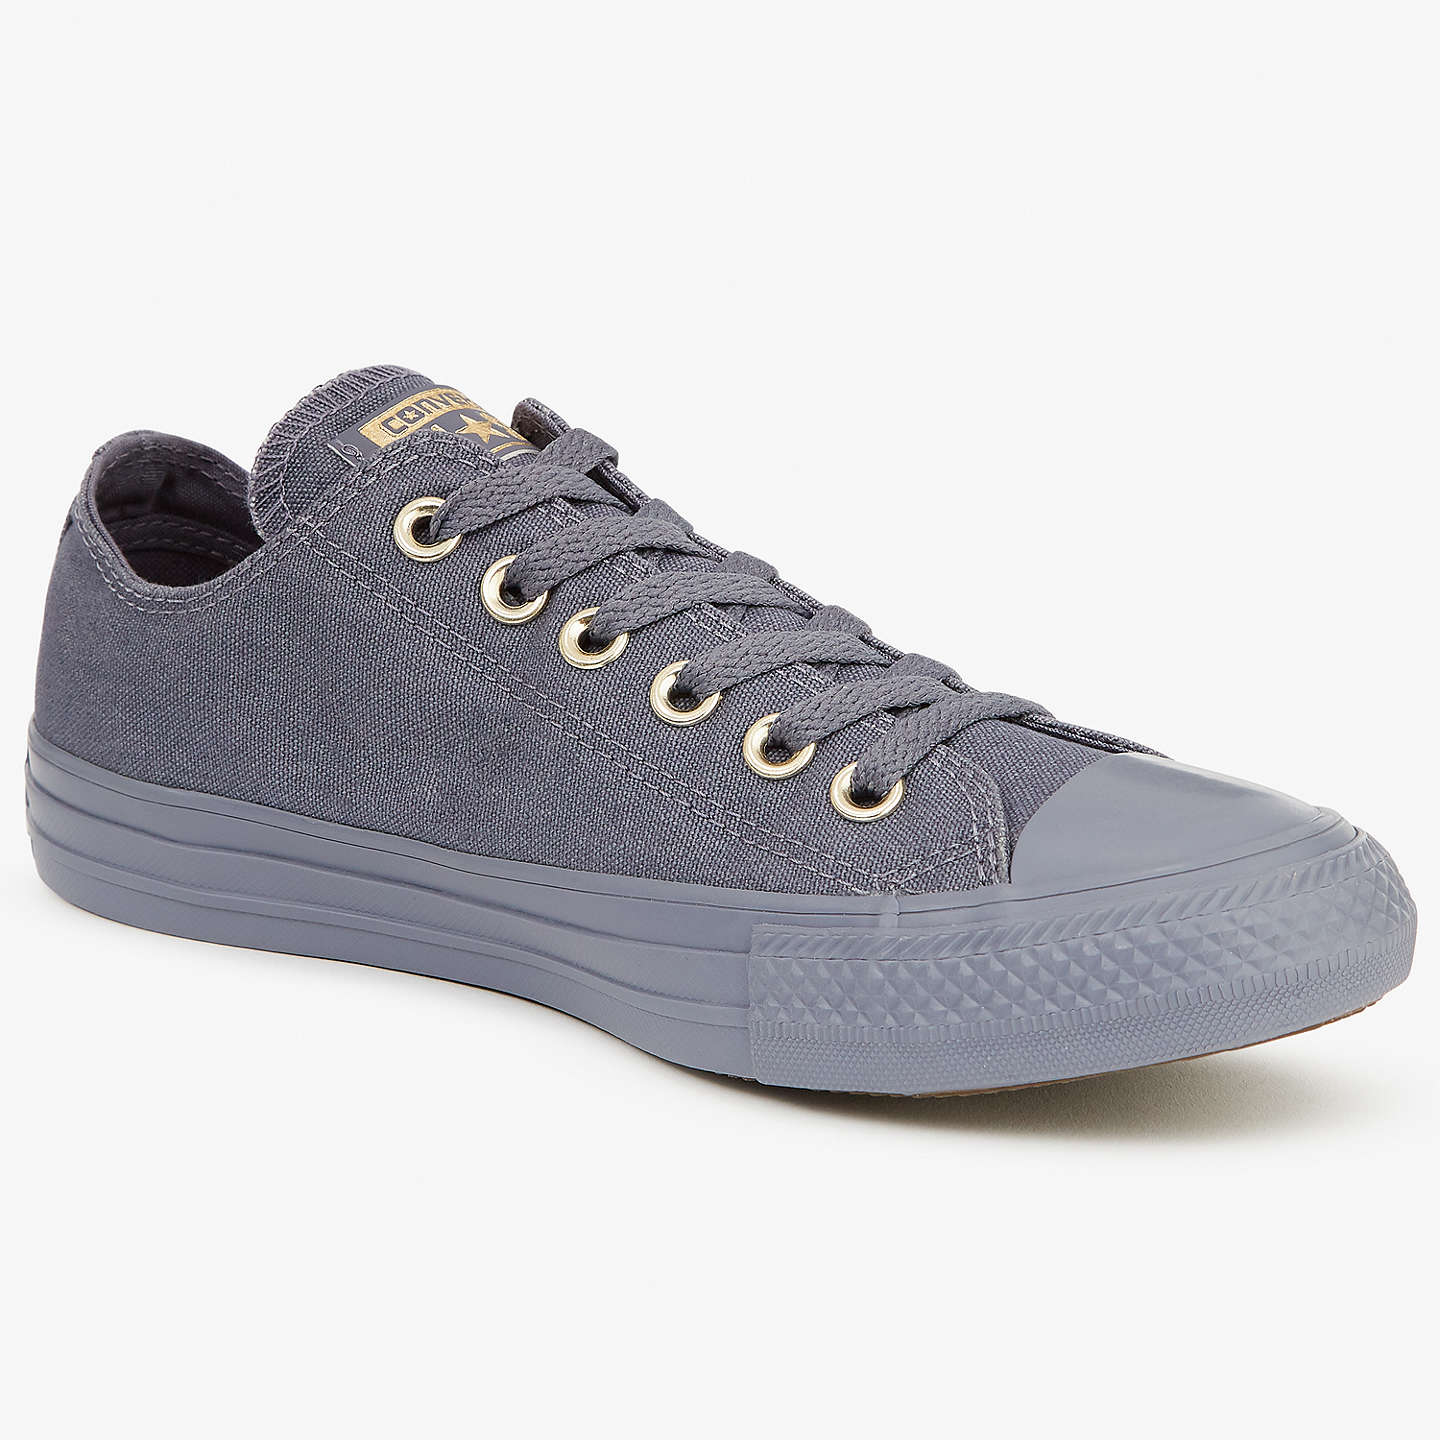 BuyConverse Chuck Taylor All Star Women's Tonal Sole Low-Top Trainers, Carbon, 3 Online at johnlewis.com